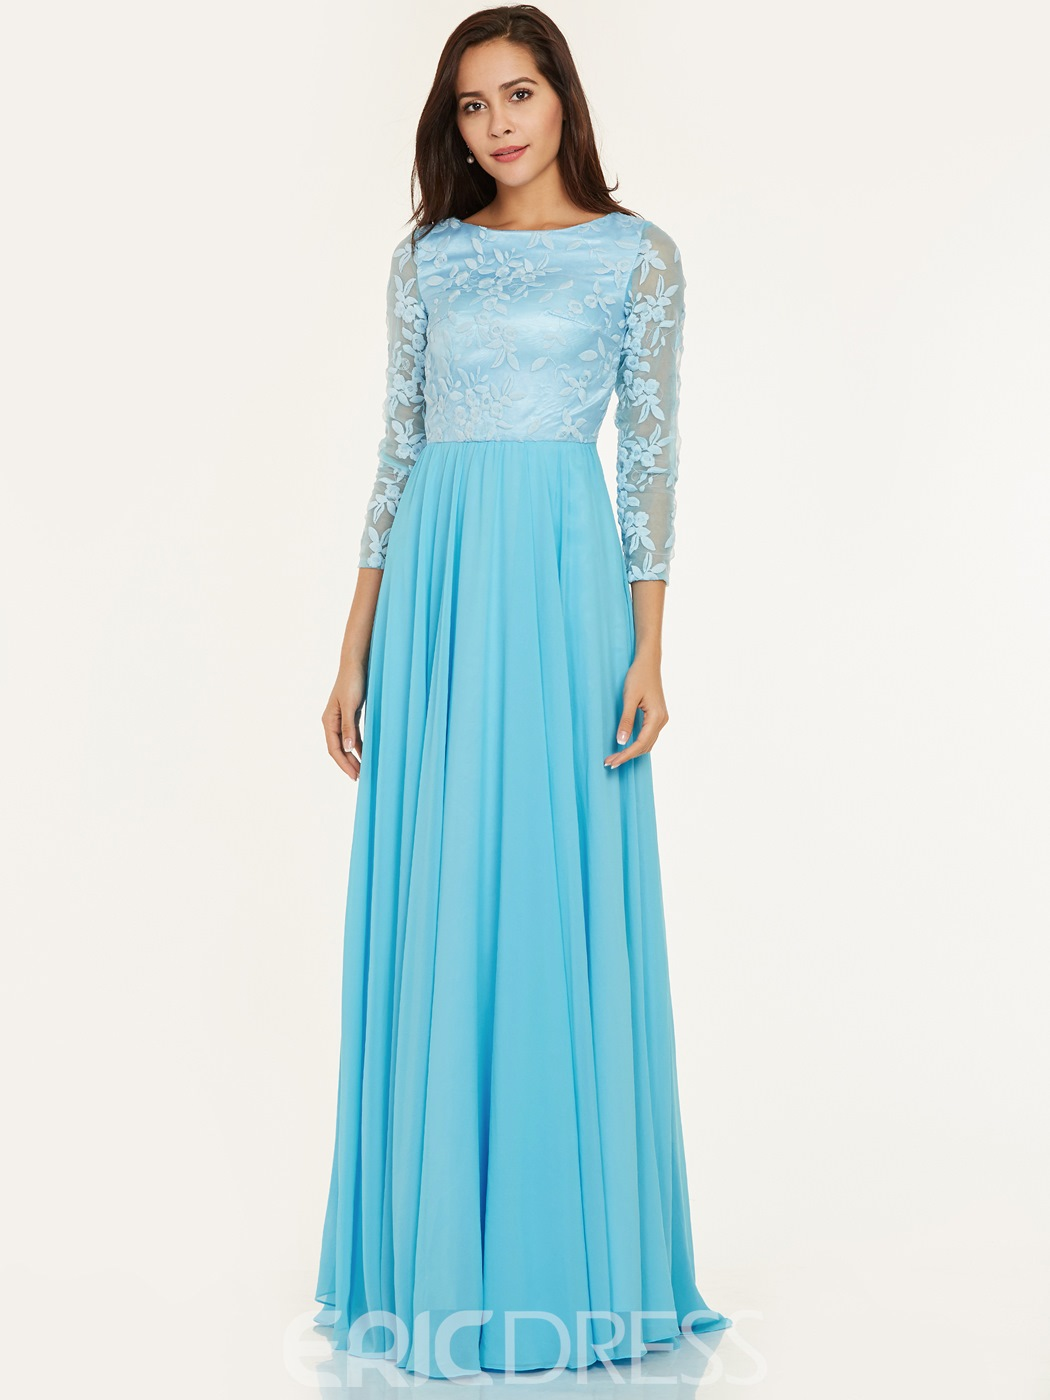 Ericdress Scoop Neck Lace A Line Evening Dress